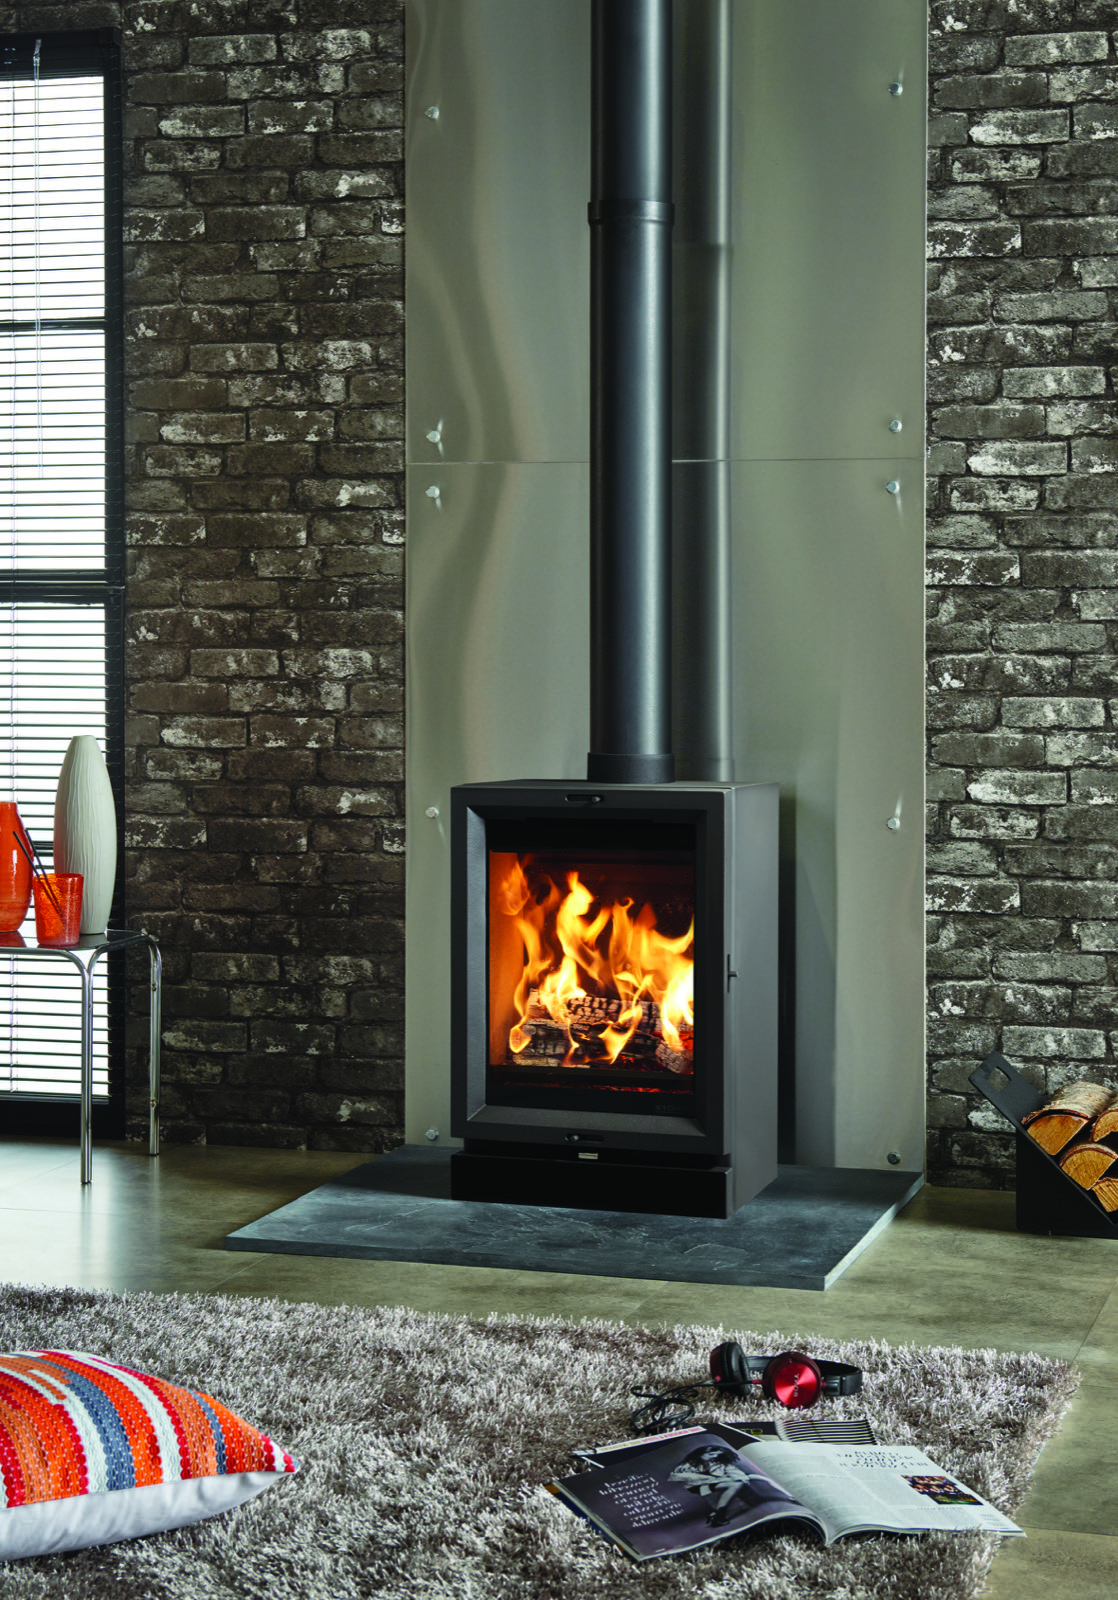 Stovax View 5T Multifuel Stove